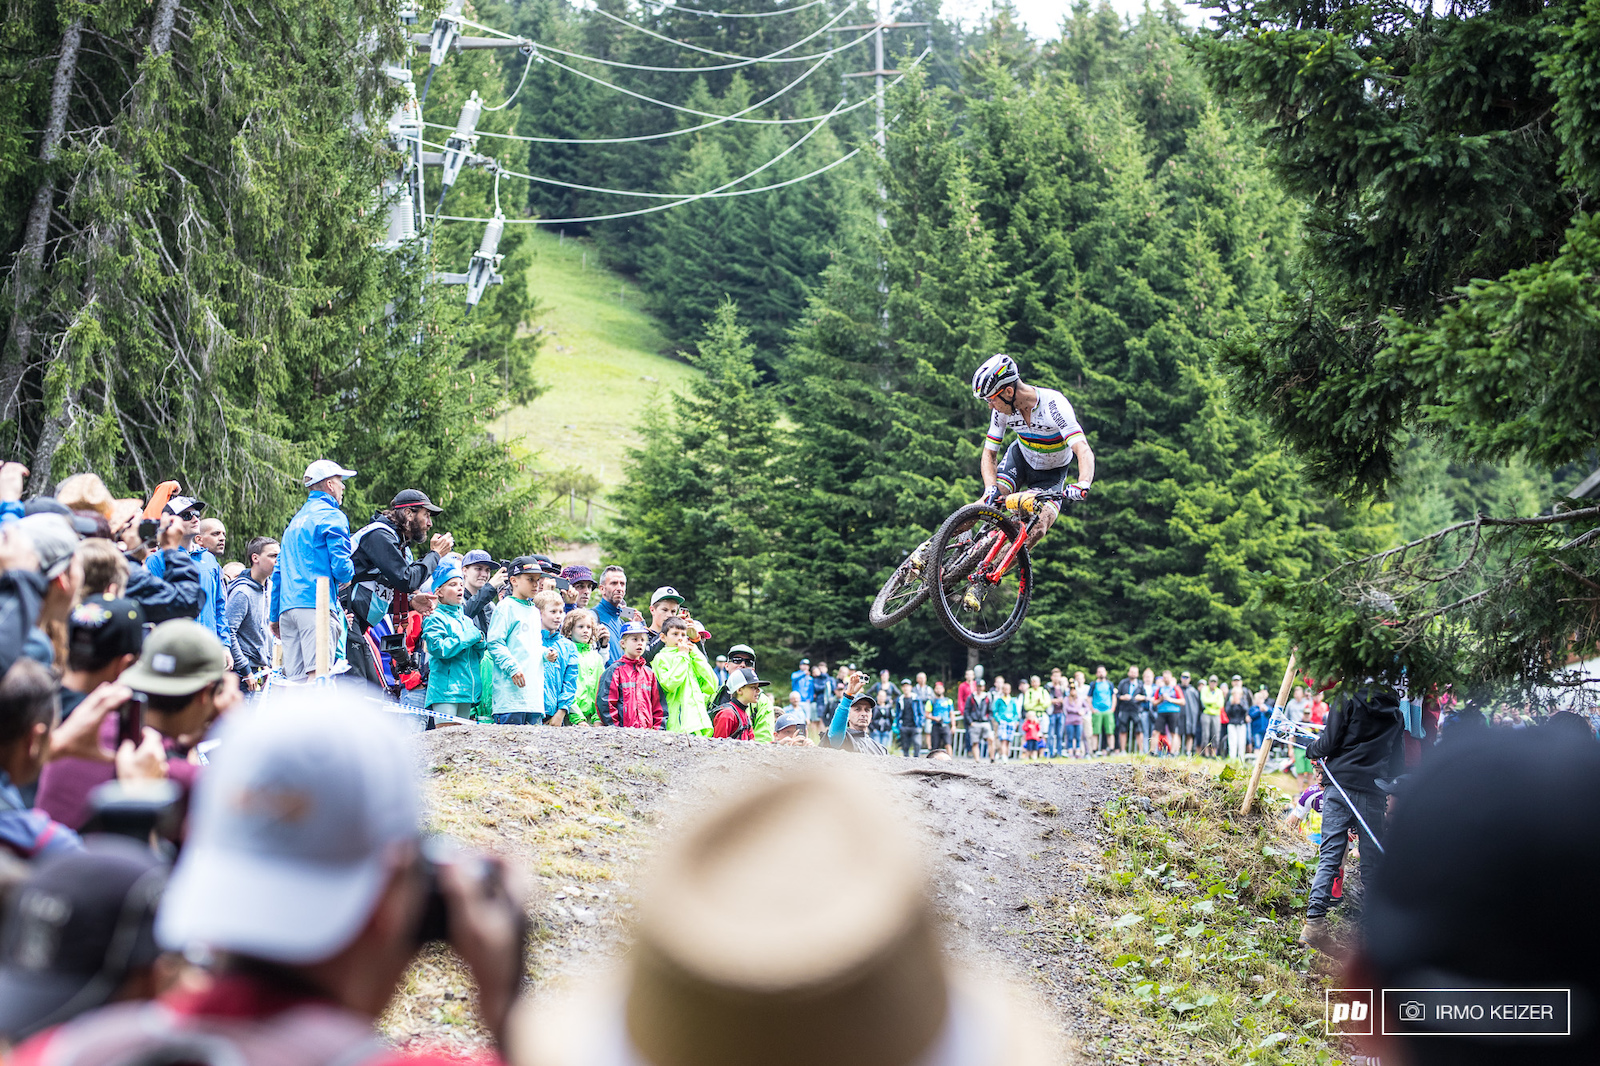 Nino Schurter giving the crowds even more reasons to cheer.